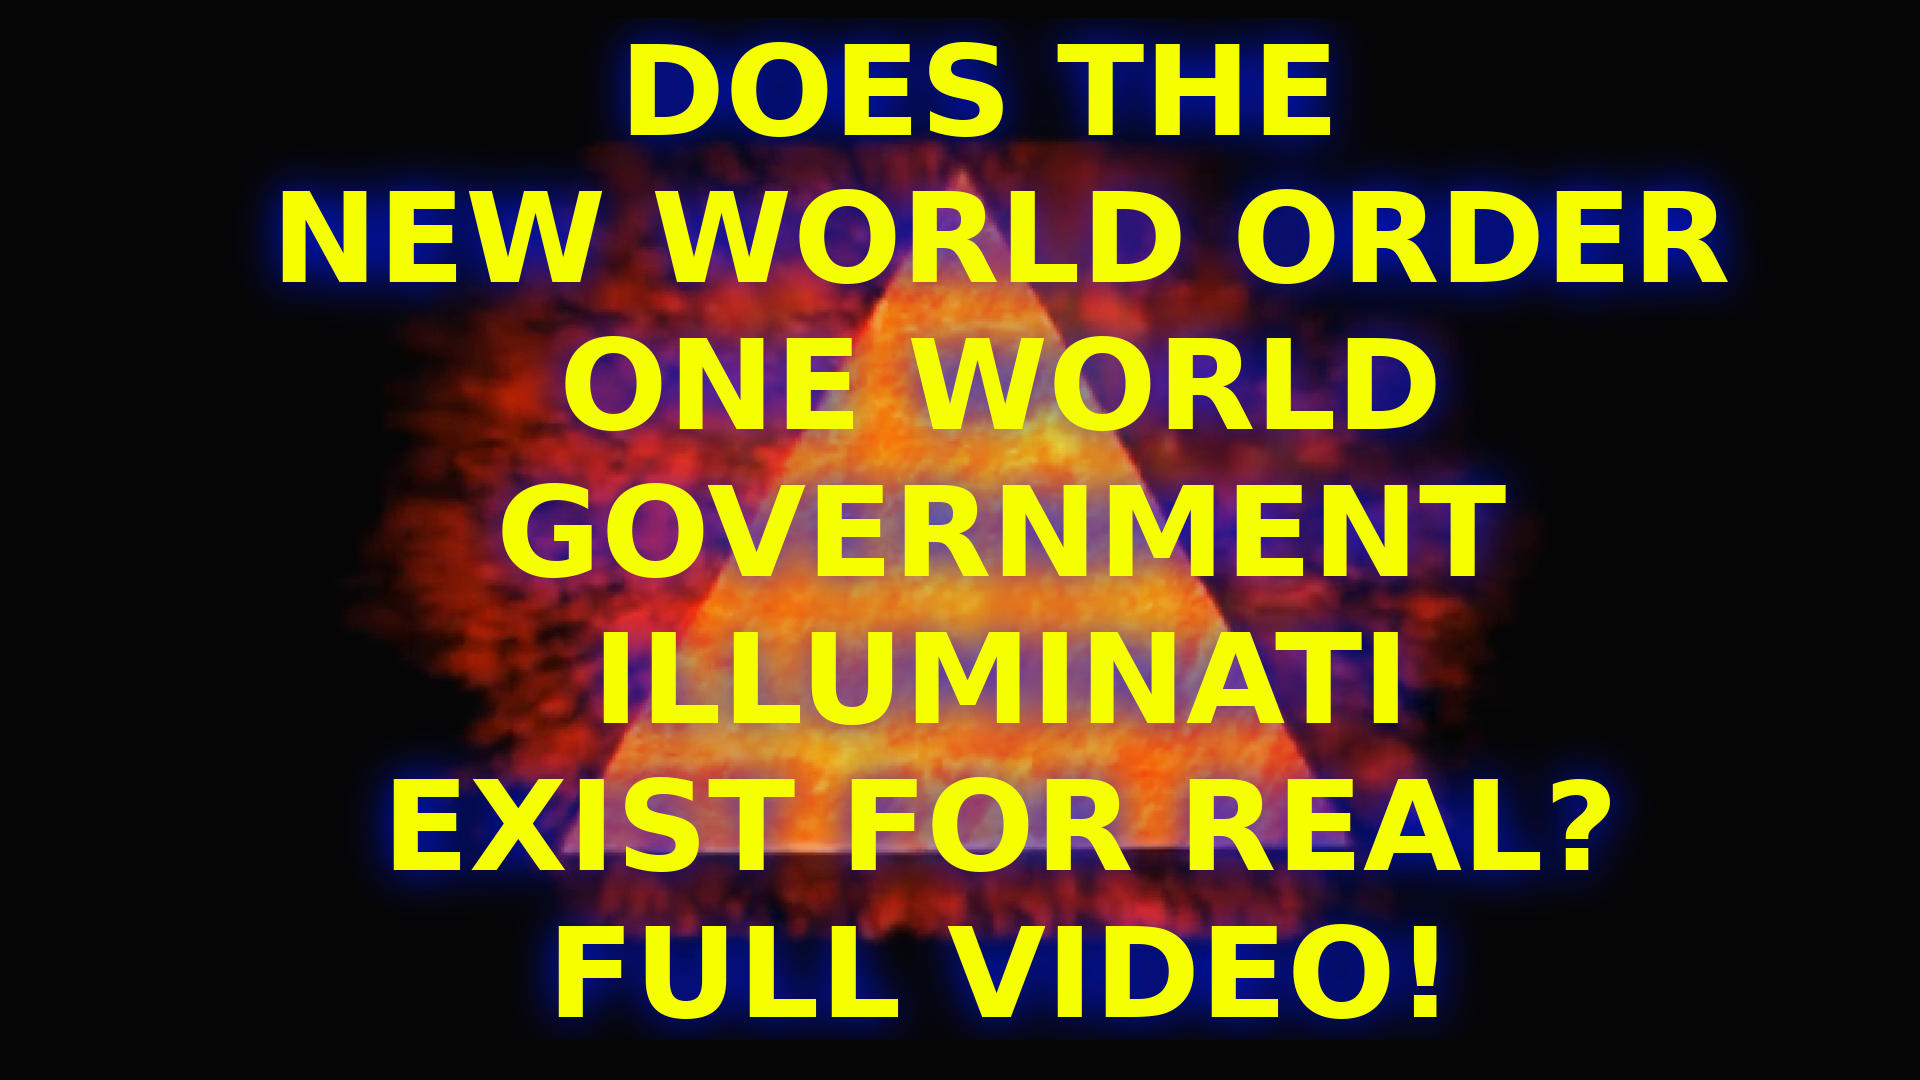 Does The New World                 Order Illuminati One World Government Exist Full Video